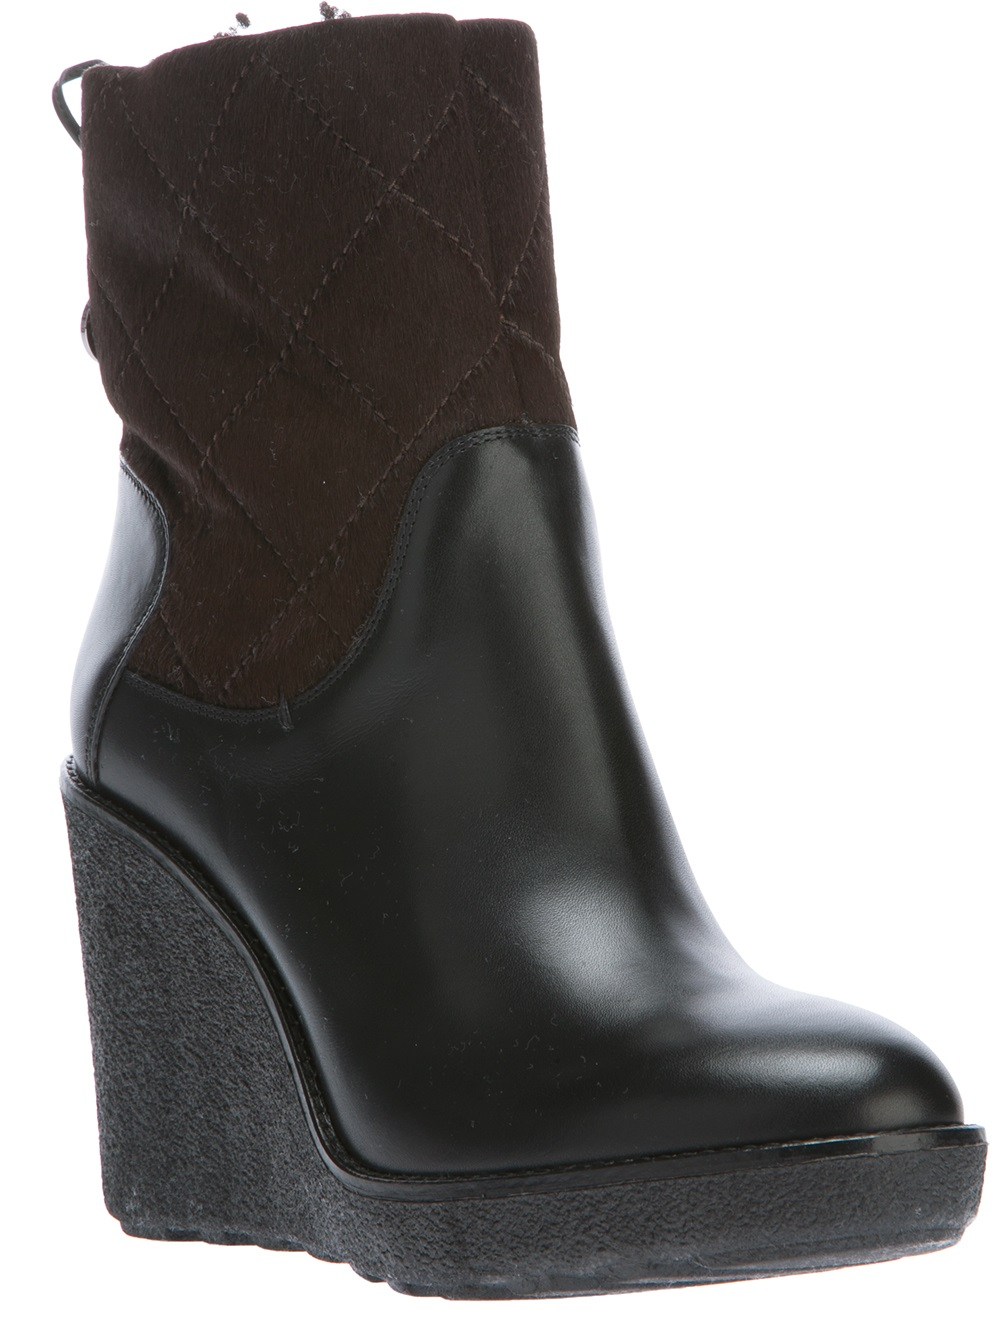 moncler wedge boot in black lyst